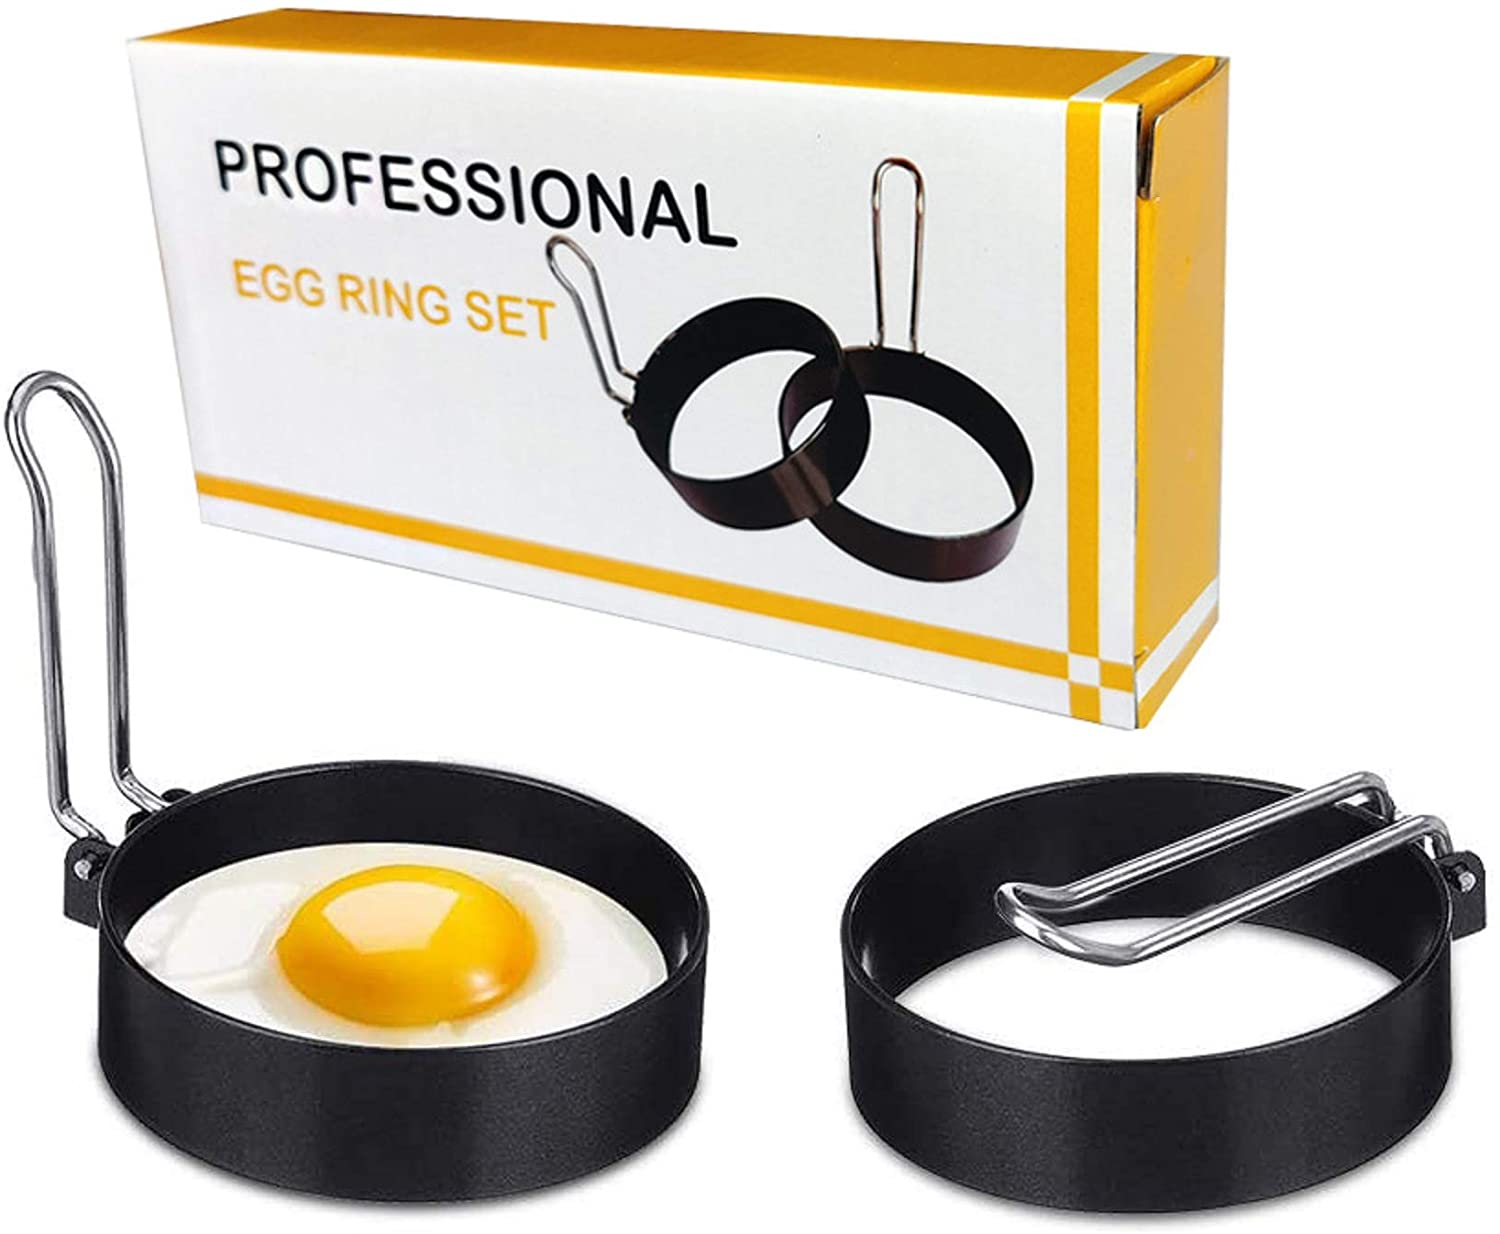 Egg Ring, 2 Pack Egg Cooker Rings, Round Breakfast Household Egg Maker Molds Circles, Kitchen Tool for Frying Shaping Cooking Eggs